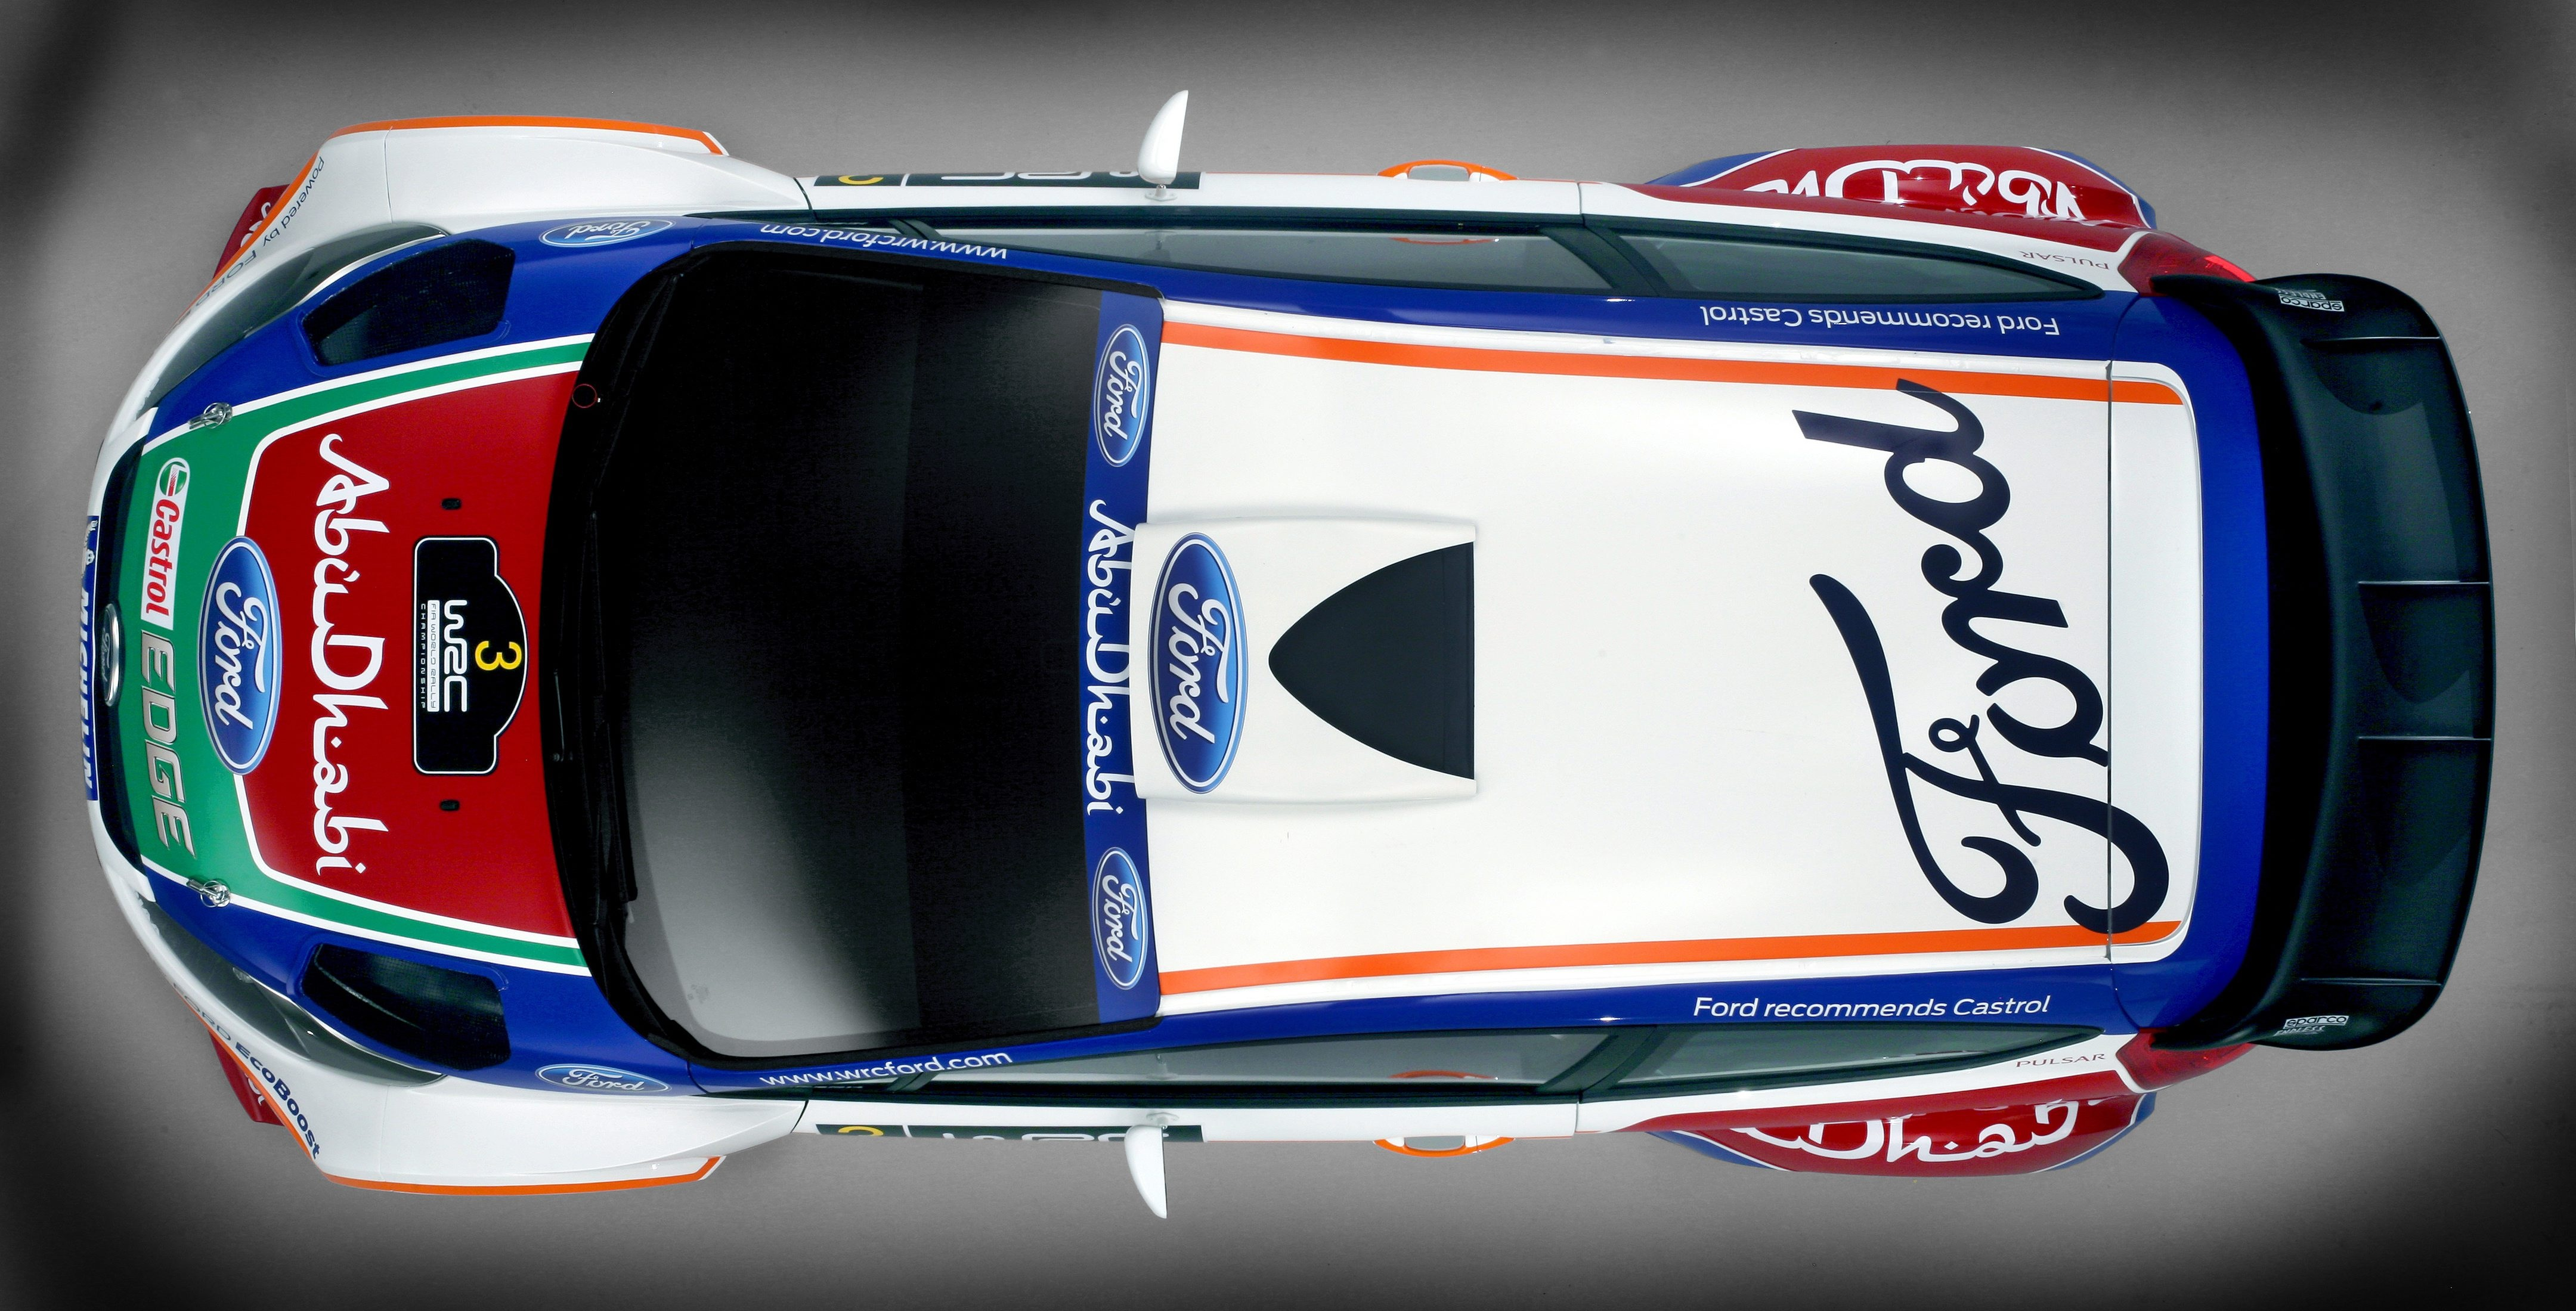 Ford issues design challenge to fans